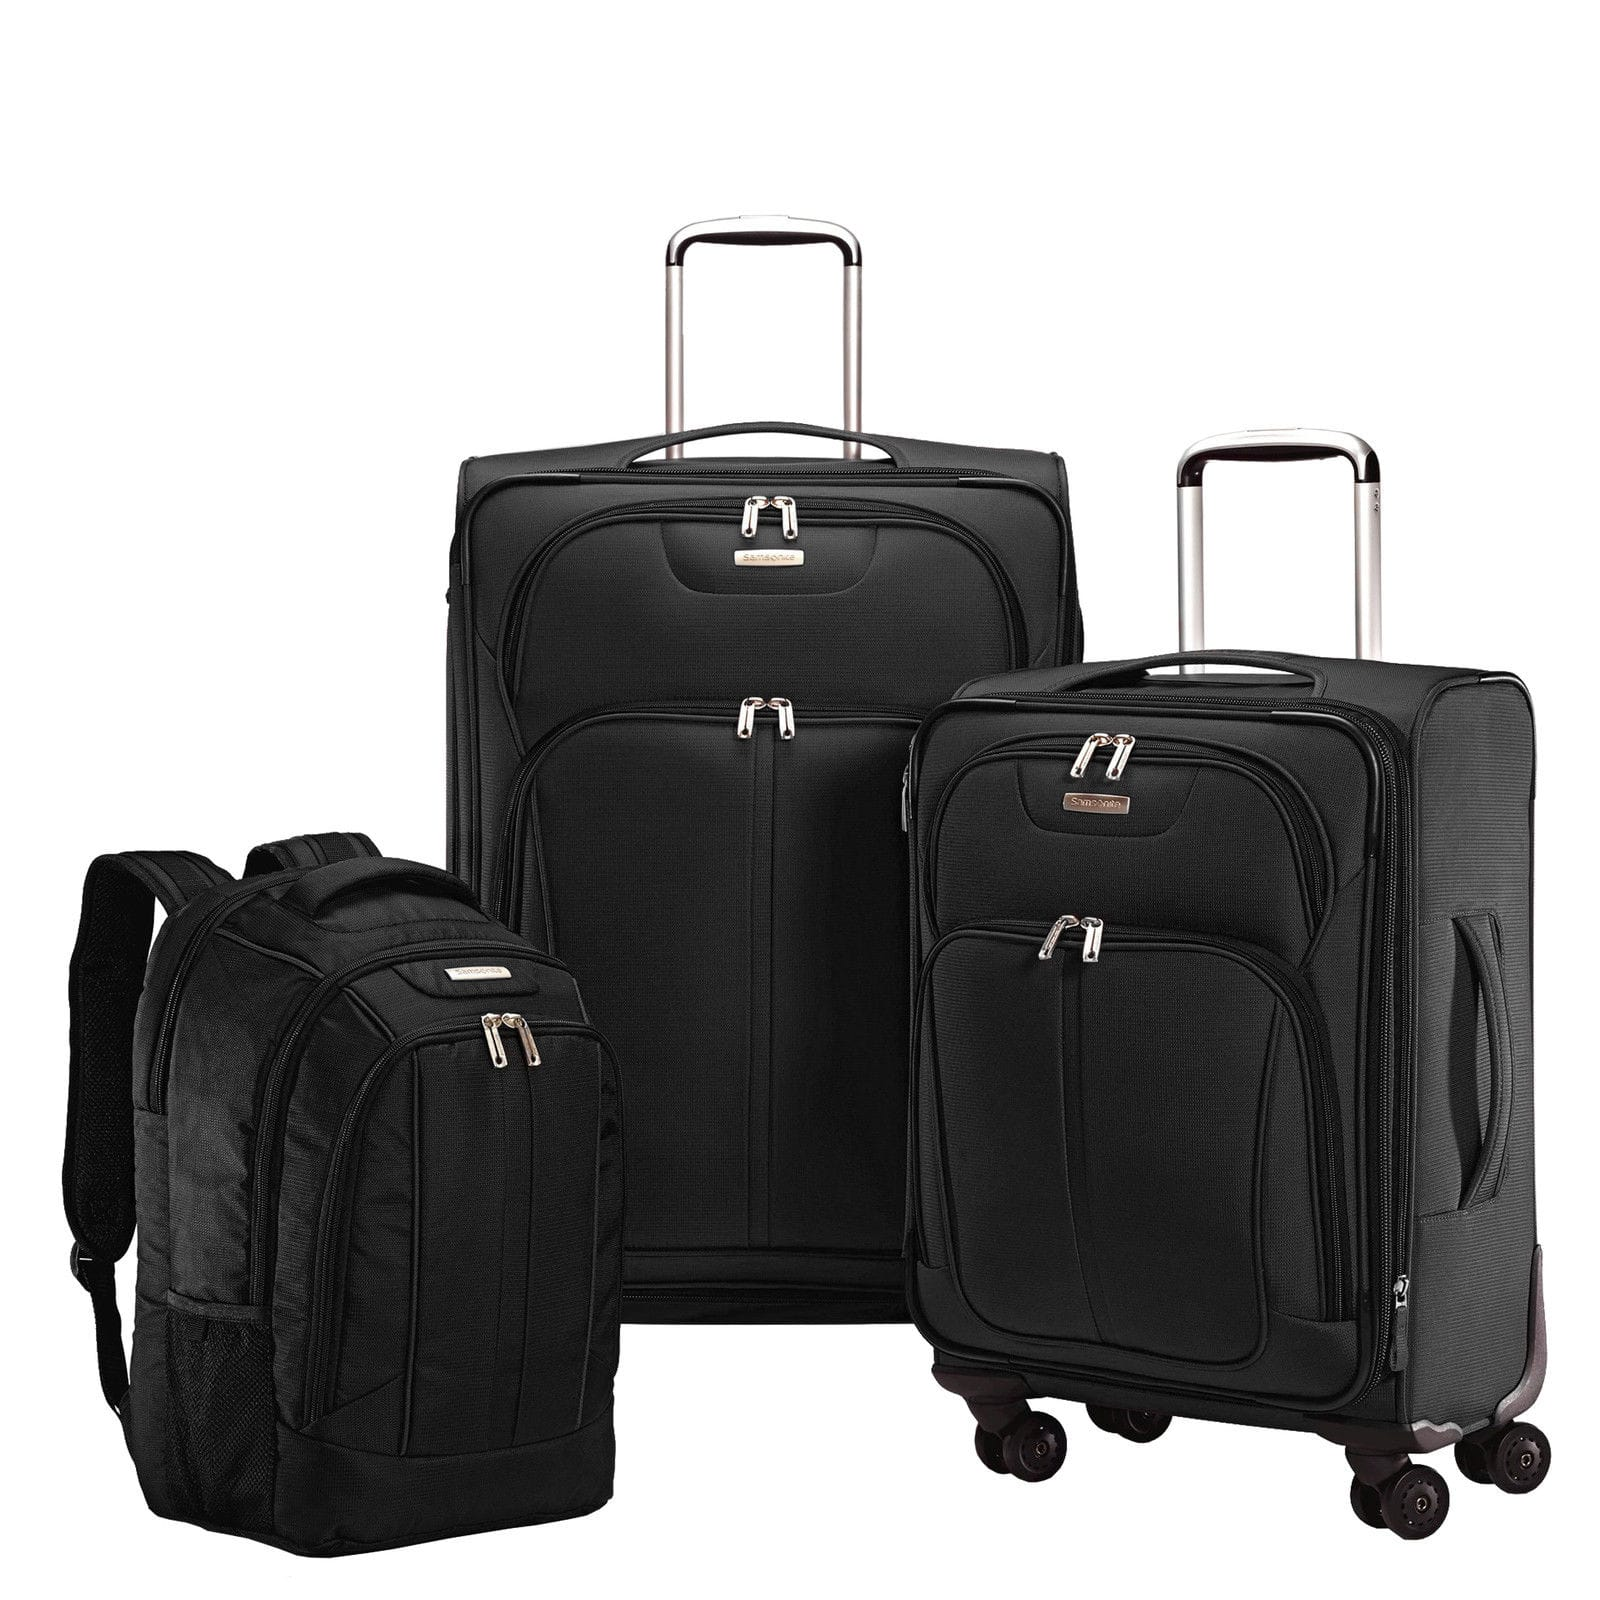 Welcome to South Africa's premier online luggage shop. We've been selling luggage online for over 10 years and we are glad you have found your way to our site - we're going to do our best to help you find what you are looking for.